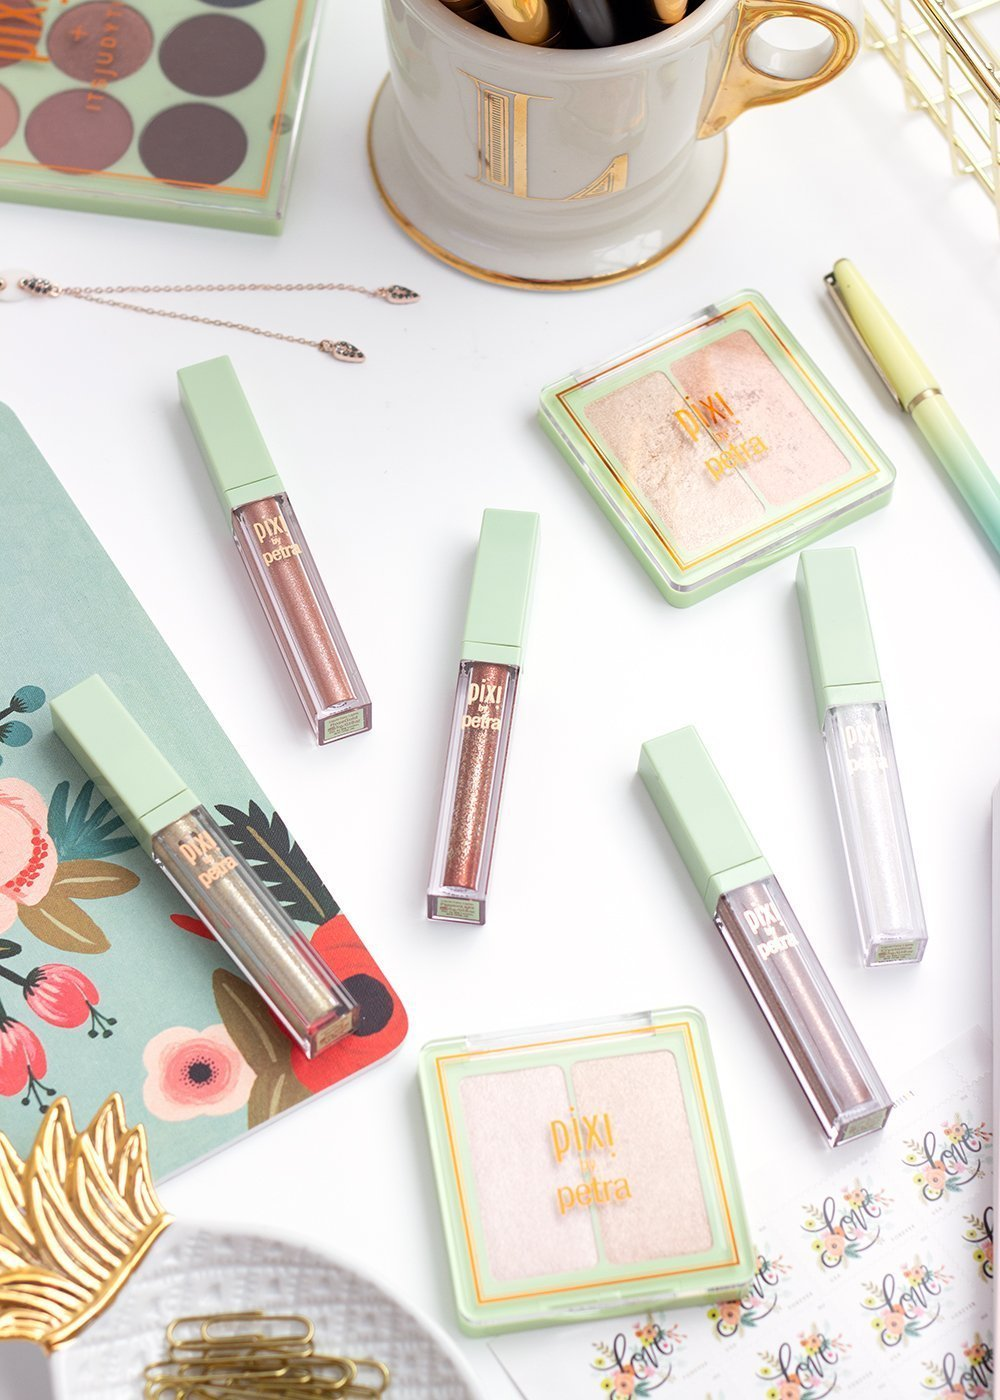 Pixi Liquid Fairy Lights & Glowy Gossamer Duos